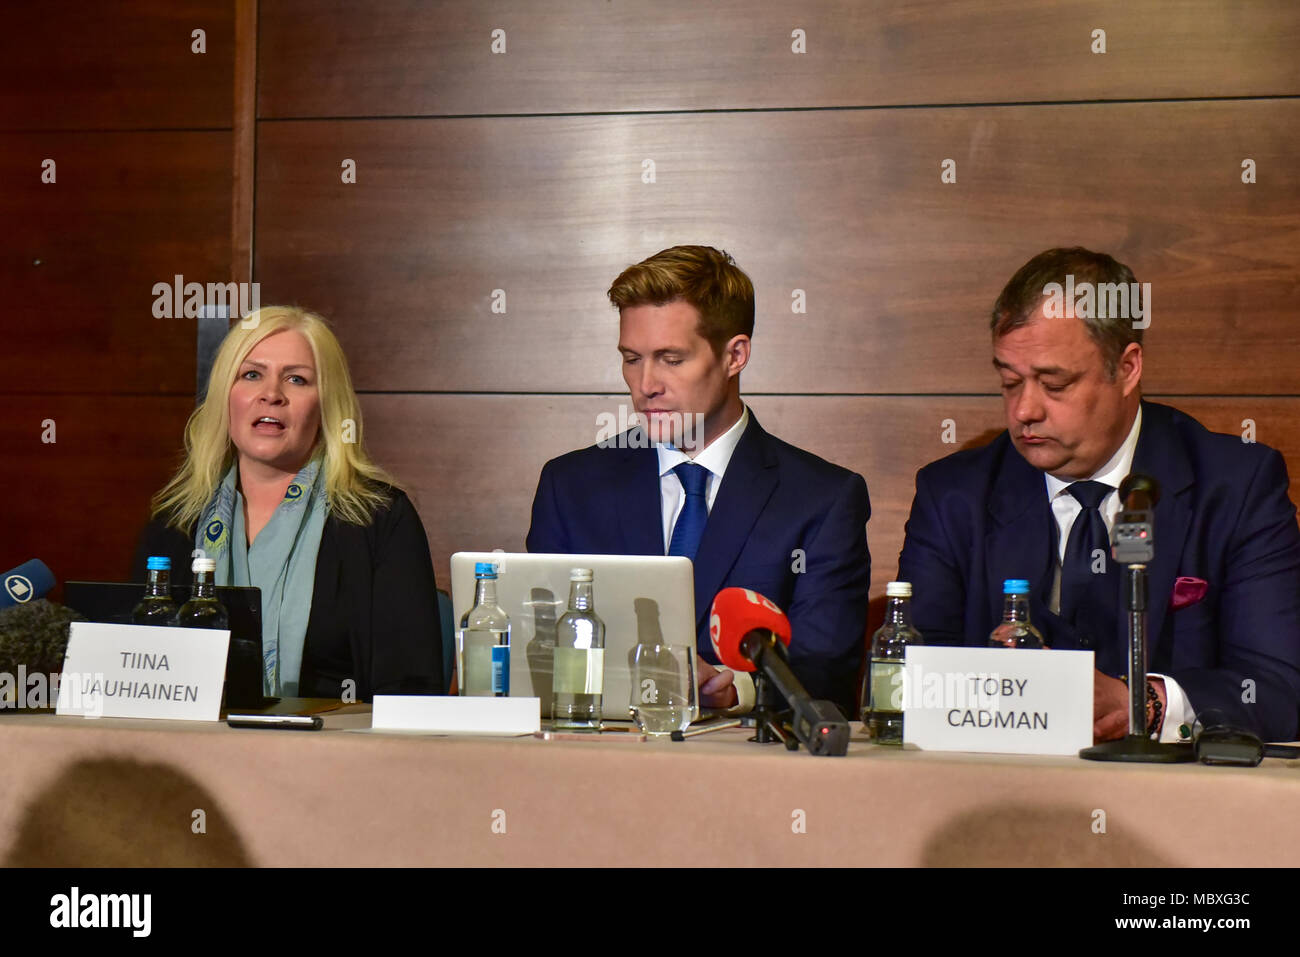 London, UK. 12 April 2018. 'Detained in Dubai' holds a press conference to discuss the status and update the public regarding the ongoing issues surrounding the escape and subsequent capture of Sheikha Latifa Al Maktoum, daughter of the ruler of the United Arab Emirates, Sheikh Mohammed bin Rashid Al Maktoum. Speakers include founder and CEO of Detained in Dubai, Radha Stirling, partner David Haigh and Toby Cadman of Guernica Chambers, alongside Tiina Jauhiaien and Hervé Jaubert. Pictured: Tiina Jauhiaien, David Haigh & Toby Cadman. Credit: Peter Manning/Alamy Live News - Stock Image